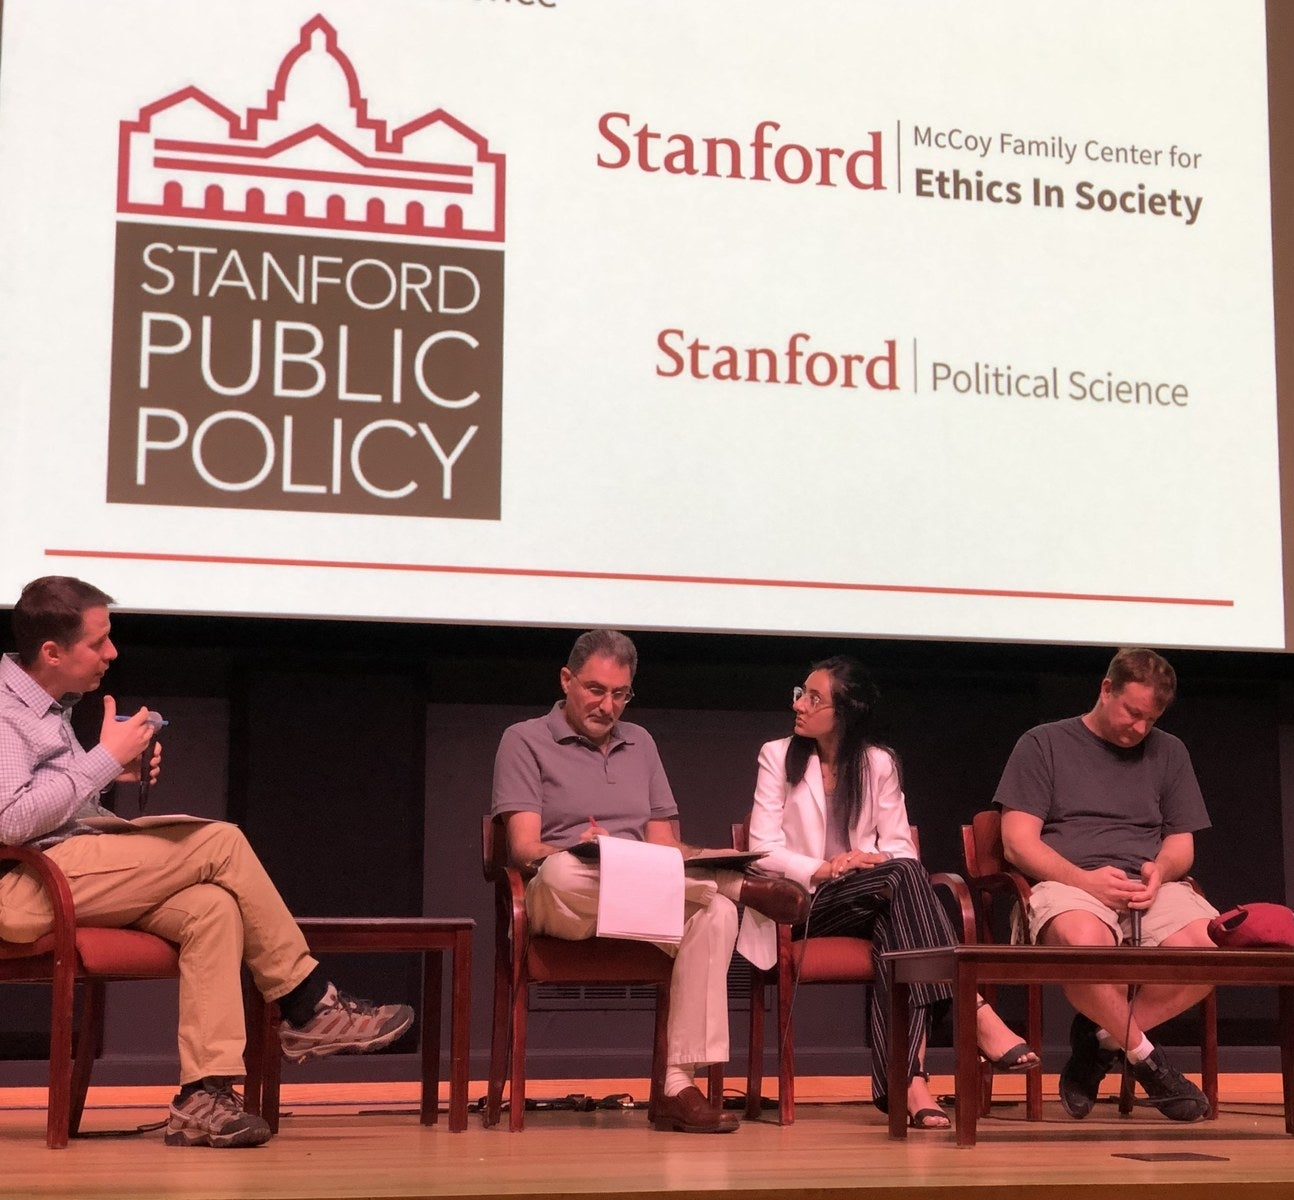 WhatsApp cofounder Brian Acton, right, spoke at Stanford University on March 13, 2019.